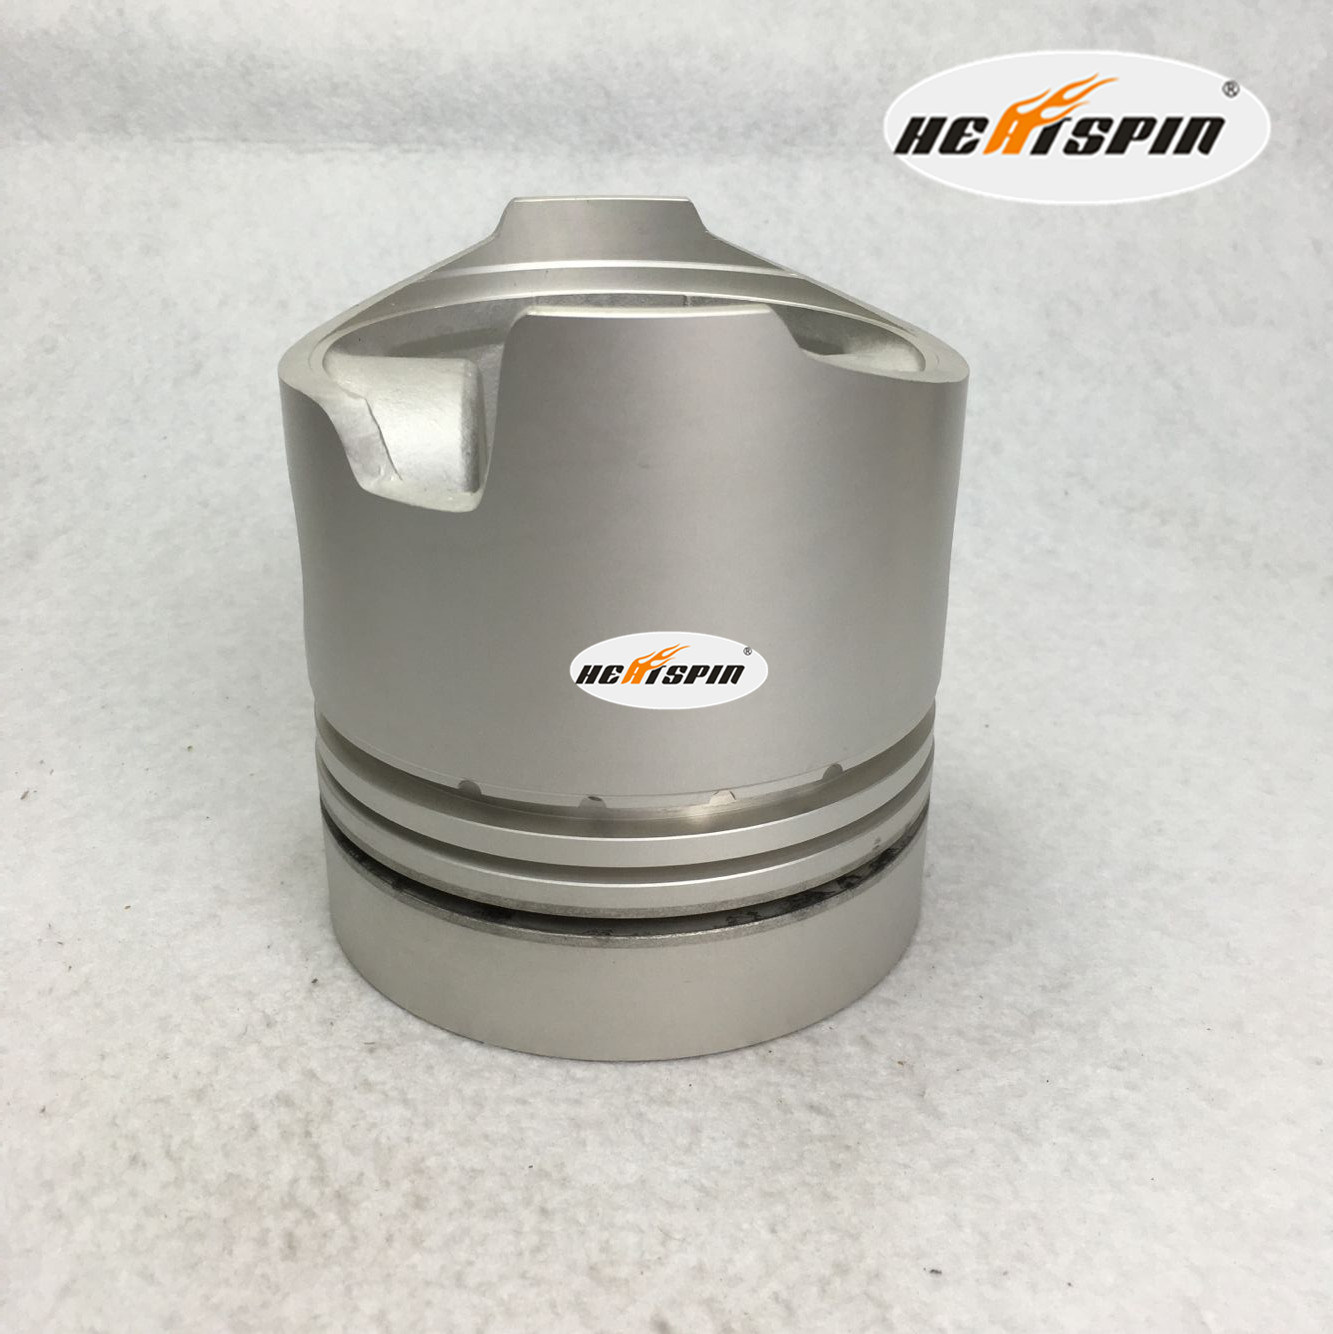 Diesel Engine Piston 6D14 for Mitsubishi Auto Spare Part Me032619